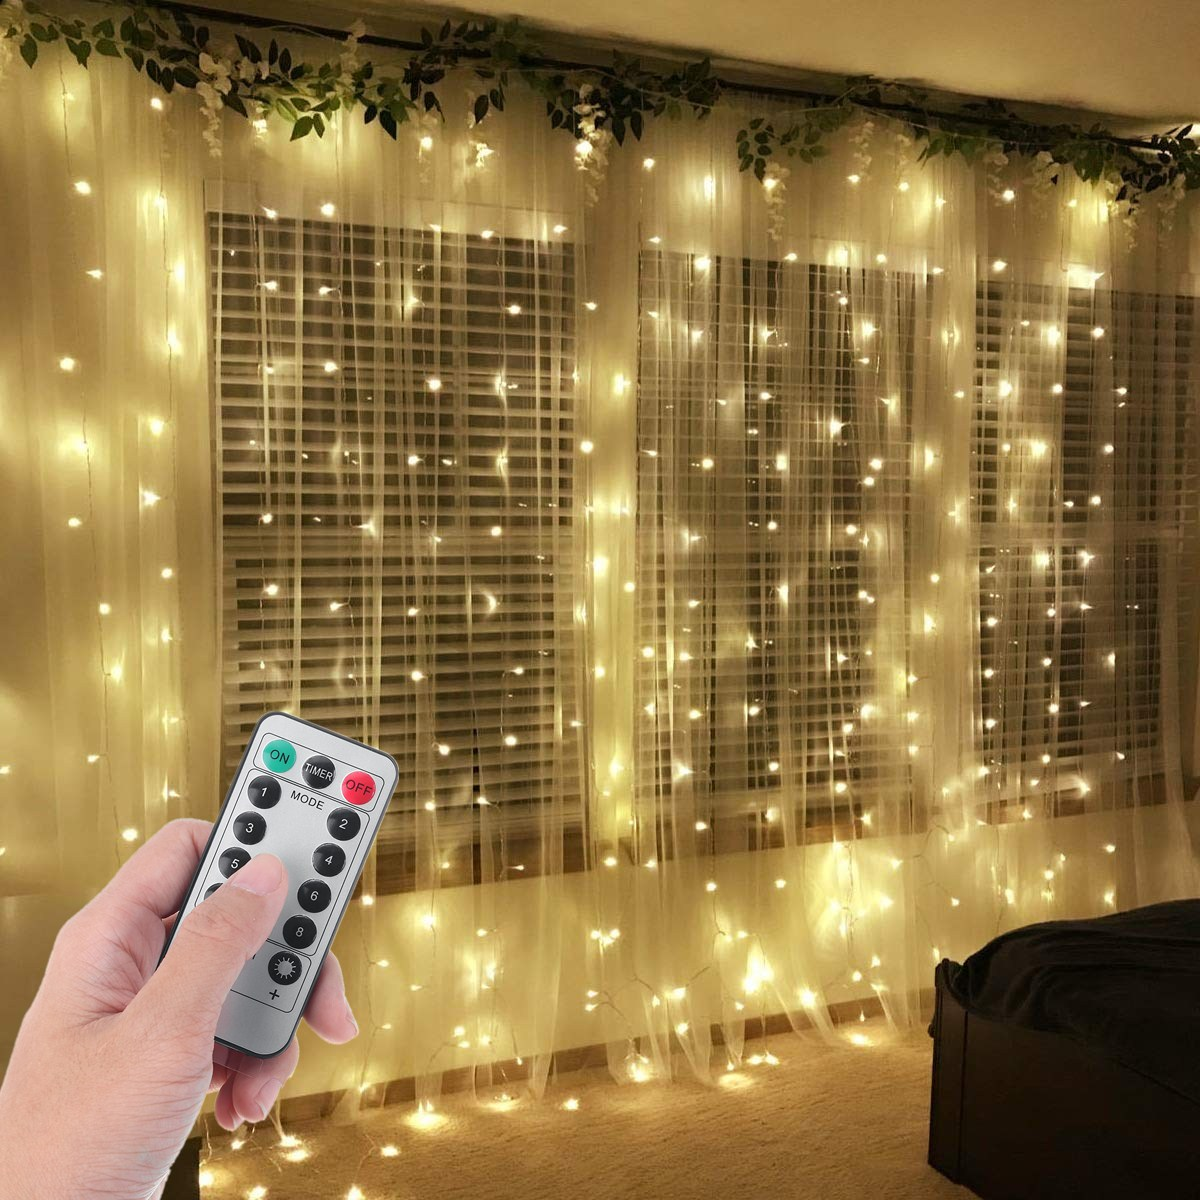 9 8ftx9 8ft 300pcs led curtain lights wall window curtain string lights for home bedroom wedding christmas party decoration 8 function control